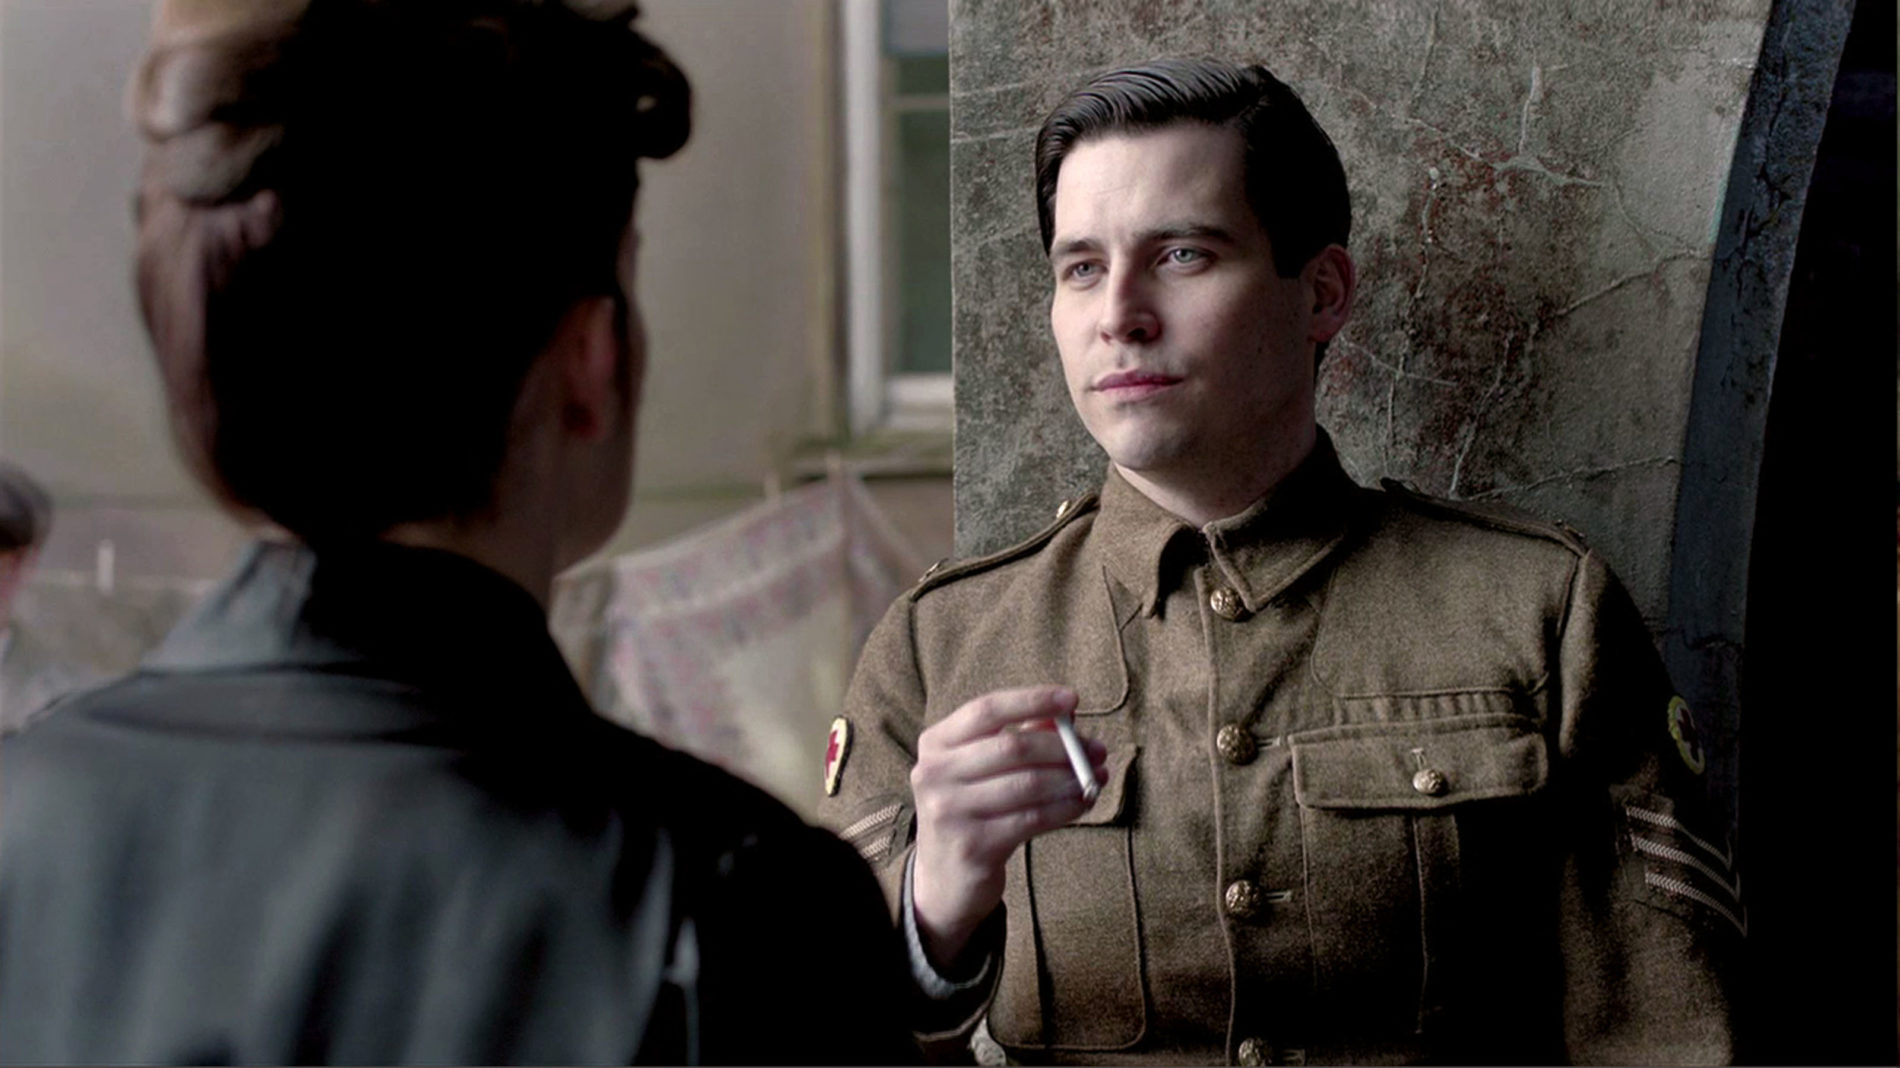 Downton Abbey star Rob James-Collier says playing gay role hurt his career